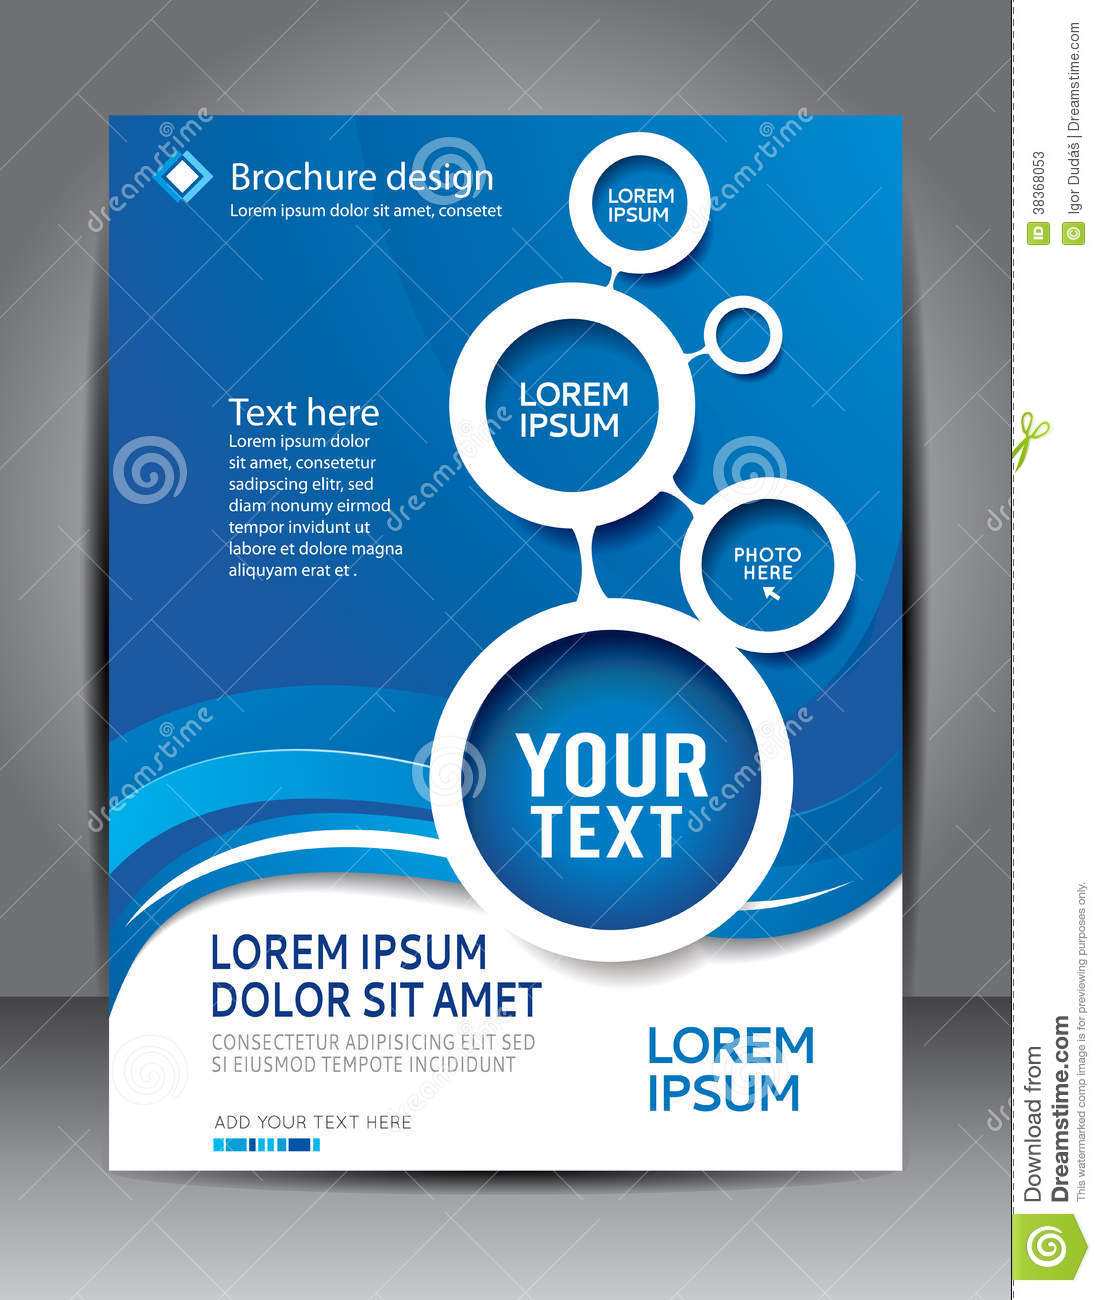 Brochure Design Content Background Stock Photos - Image: 38368053